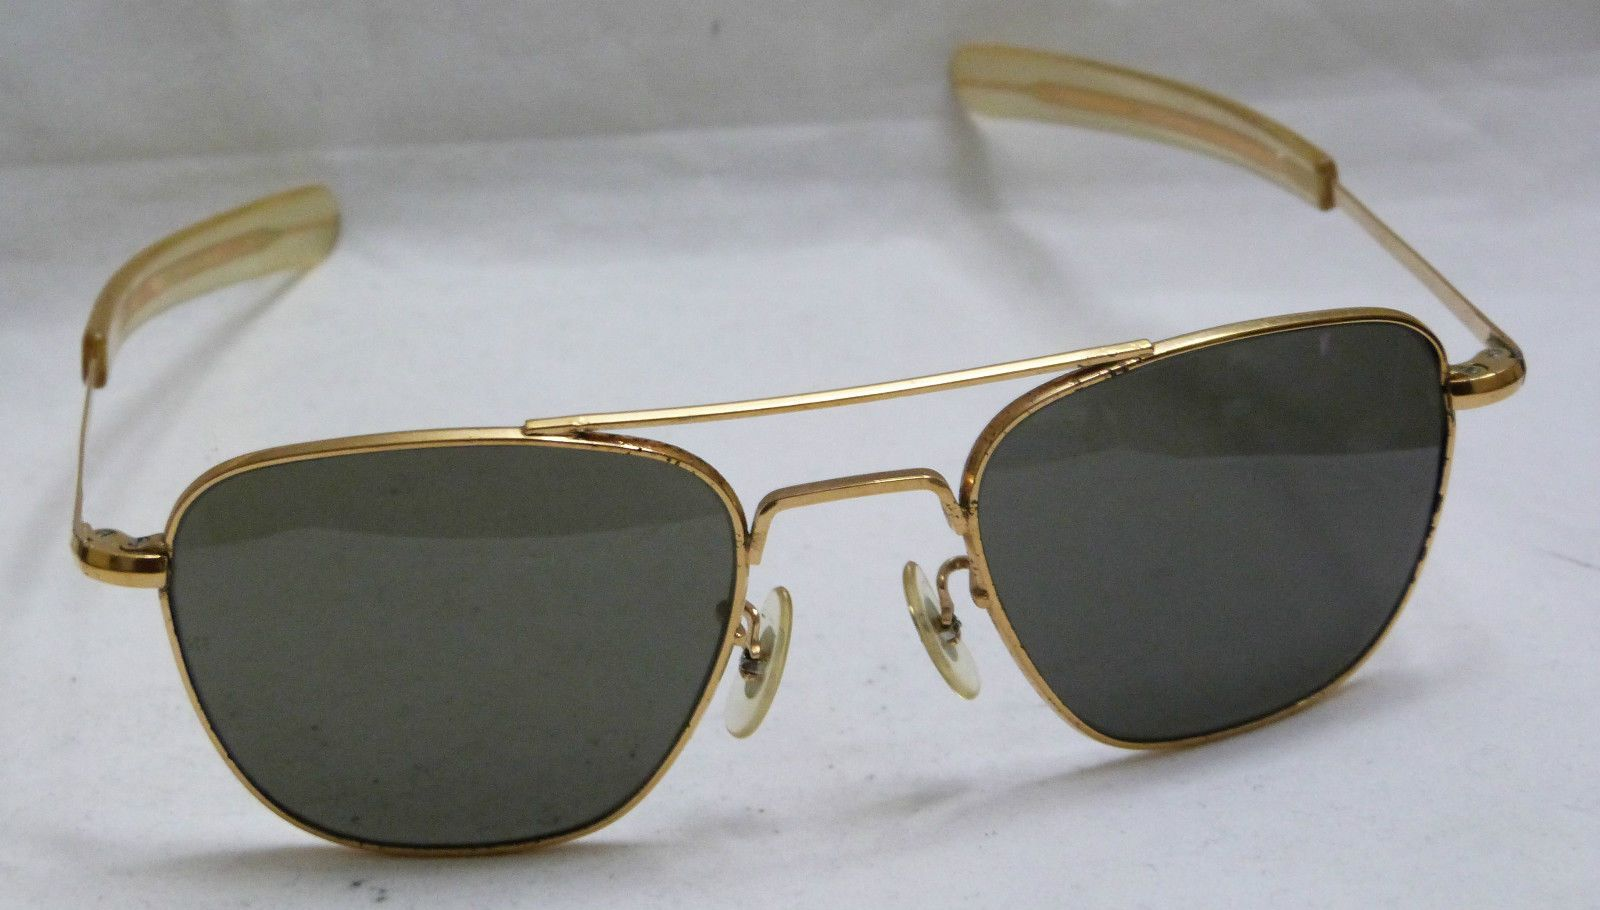 8173a8a71c5 Vtg 60 s Gold Plated Sunglasses Randolph Eng USA 5 1 2 Aviator ...